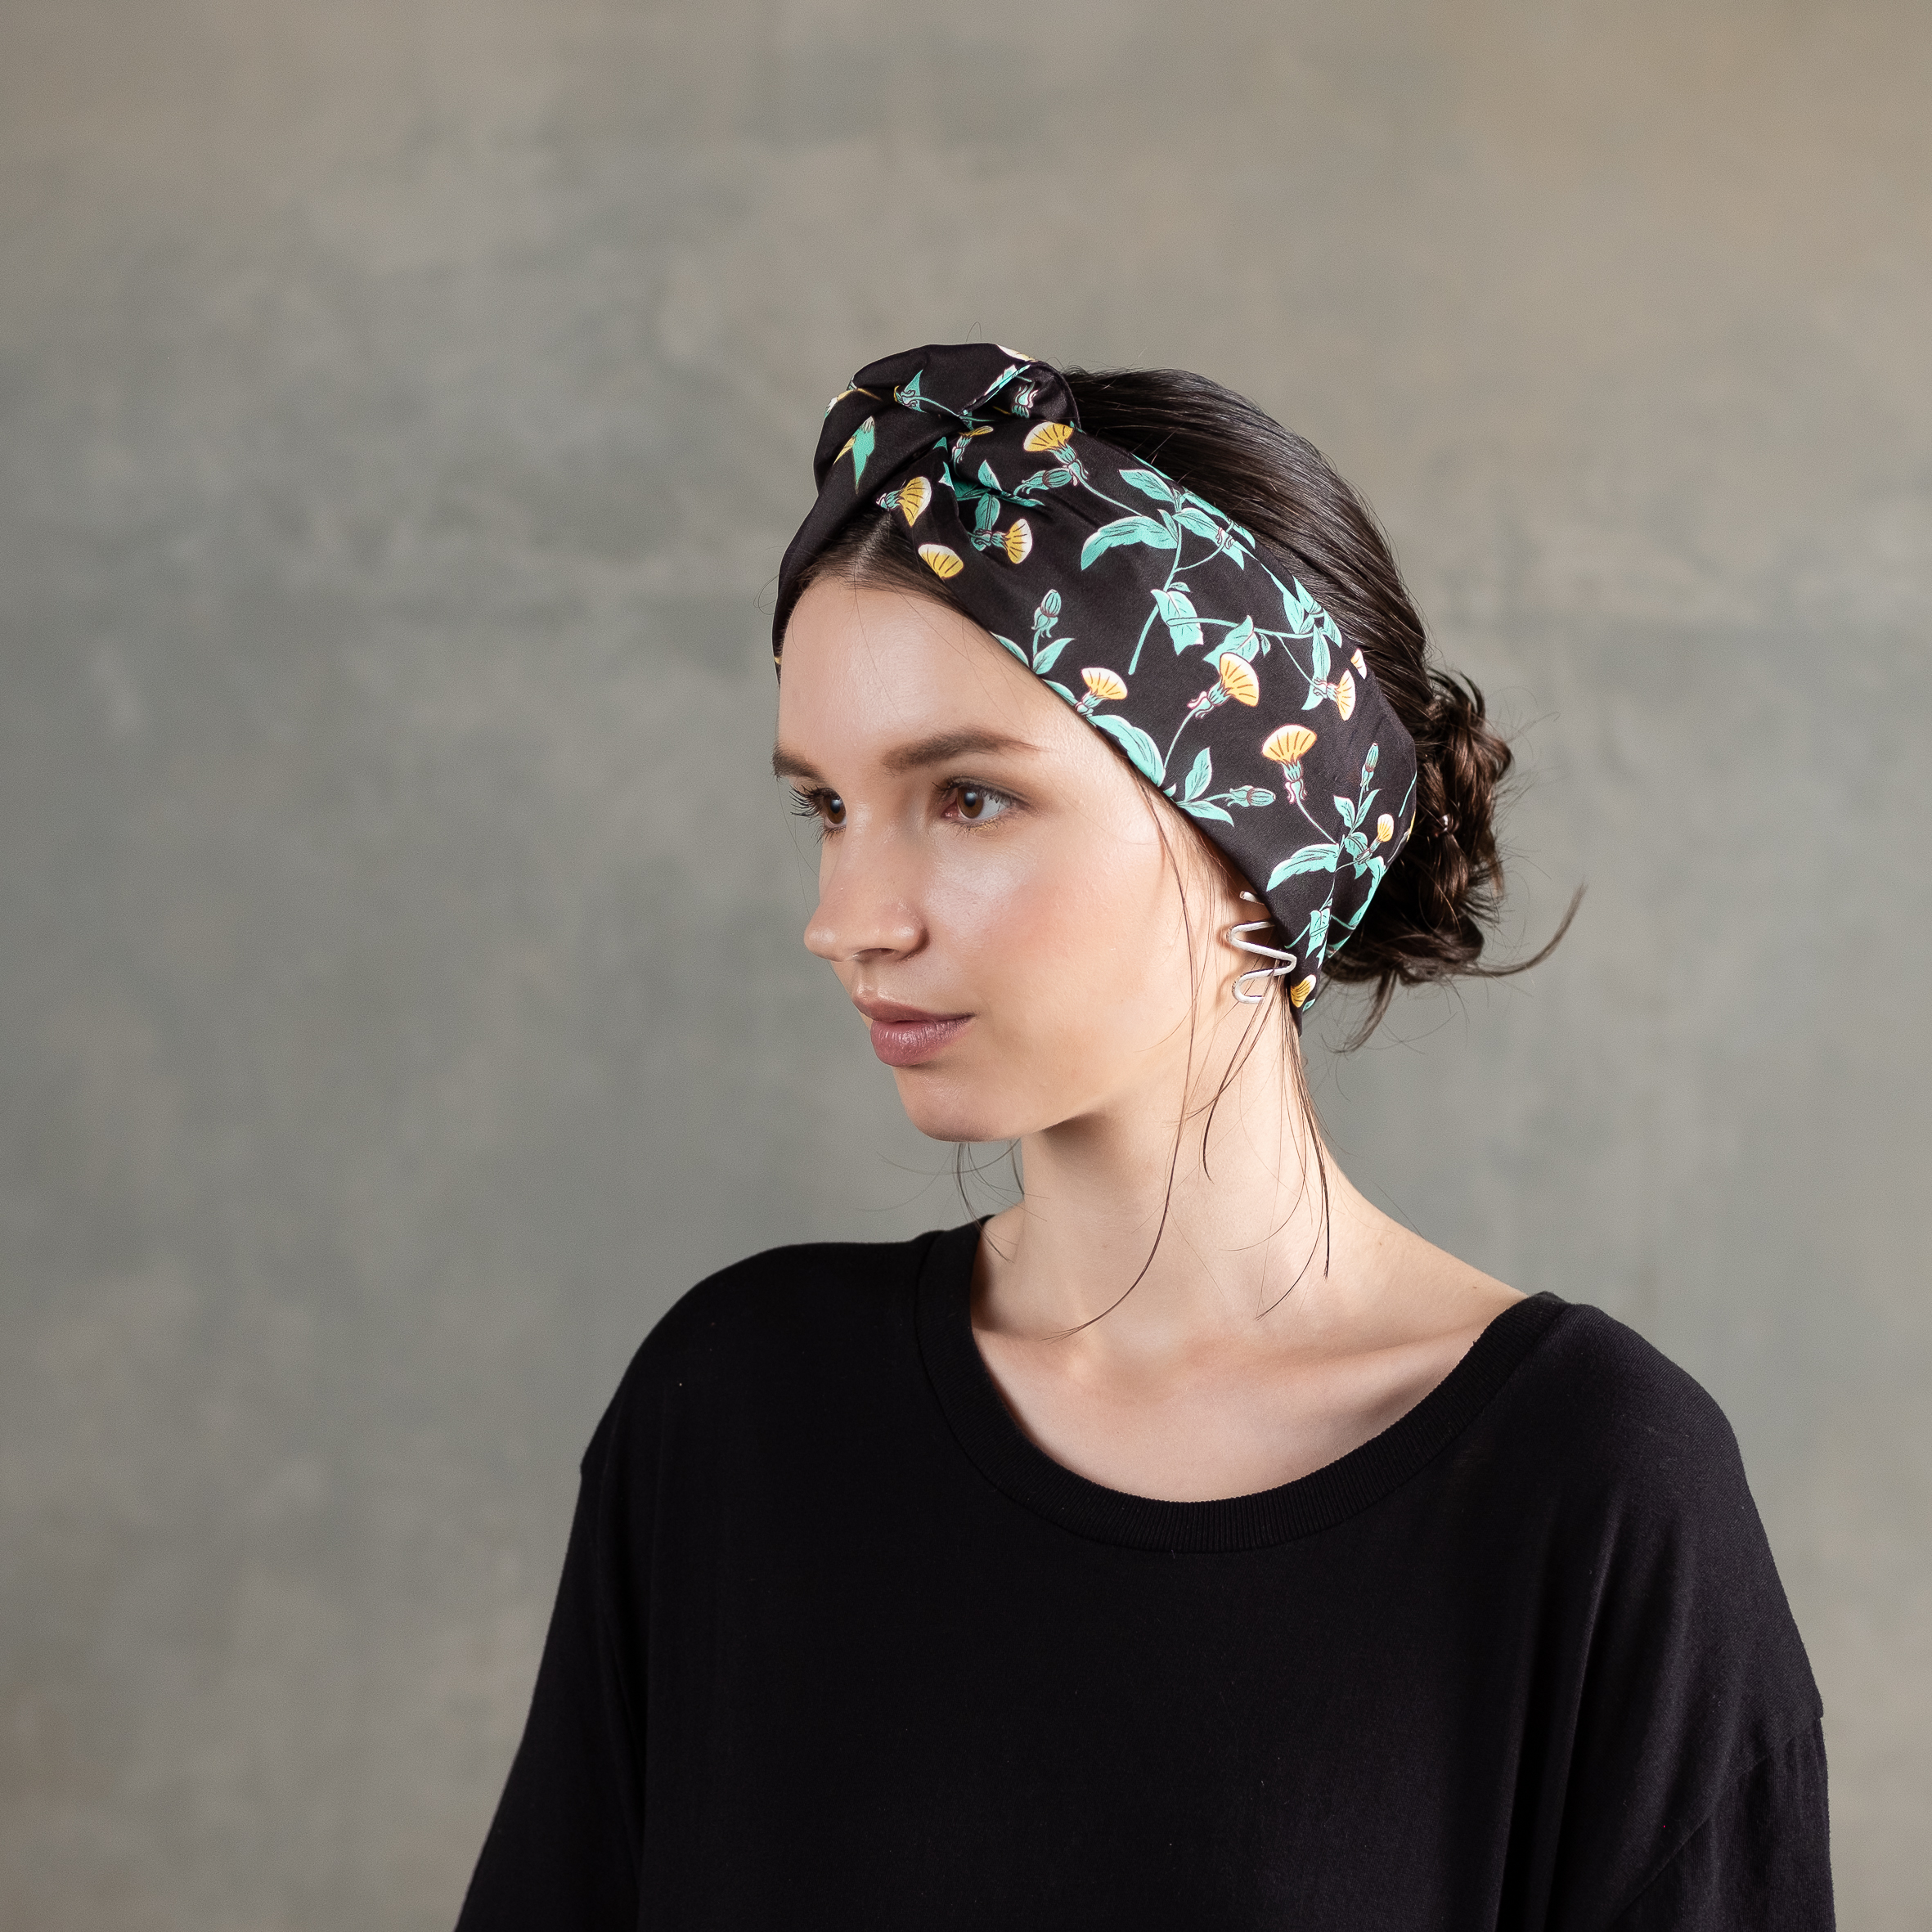 Silk headbands